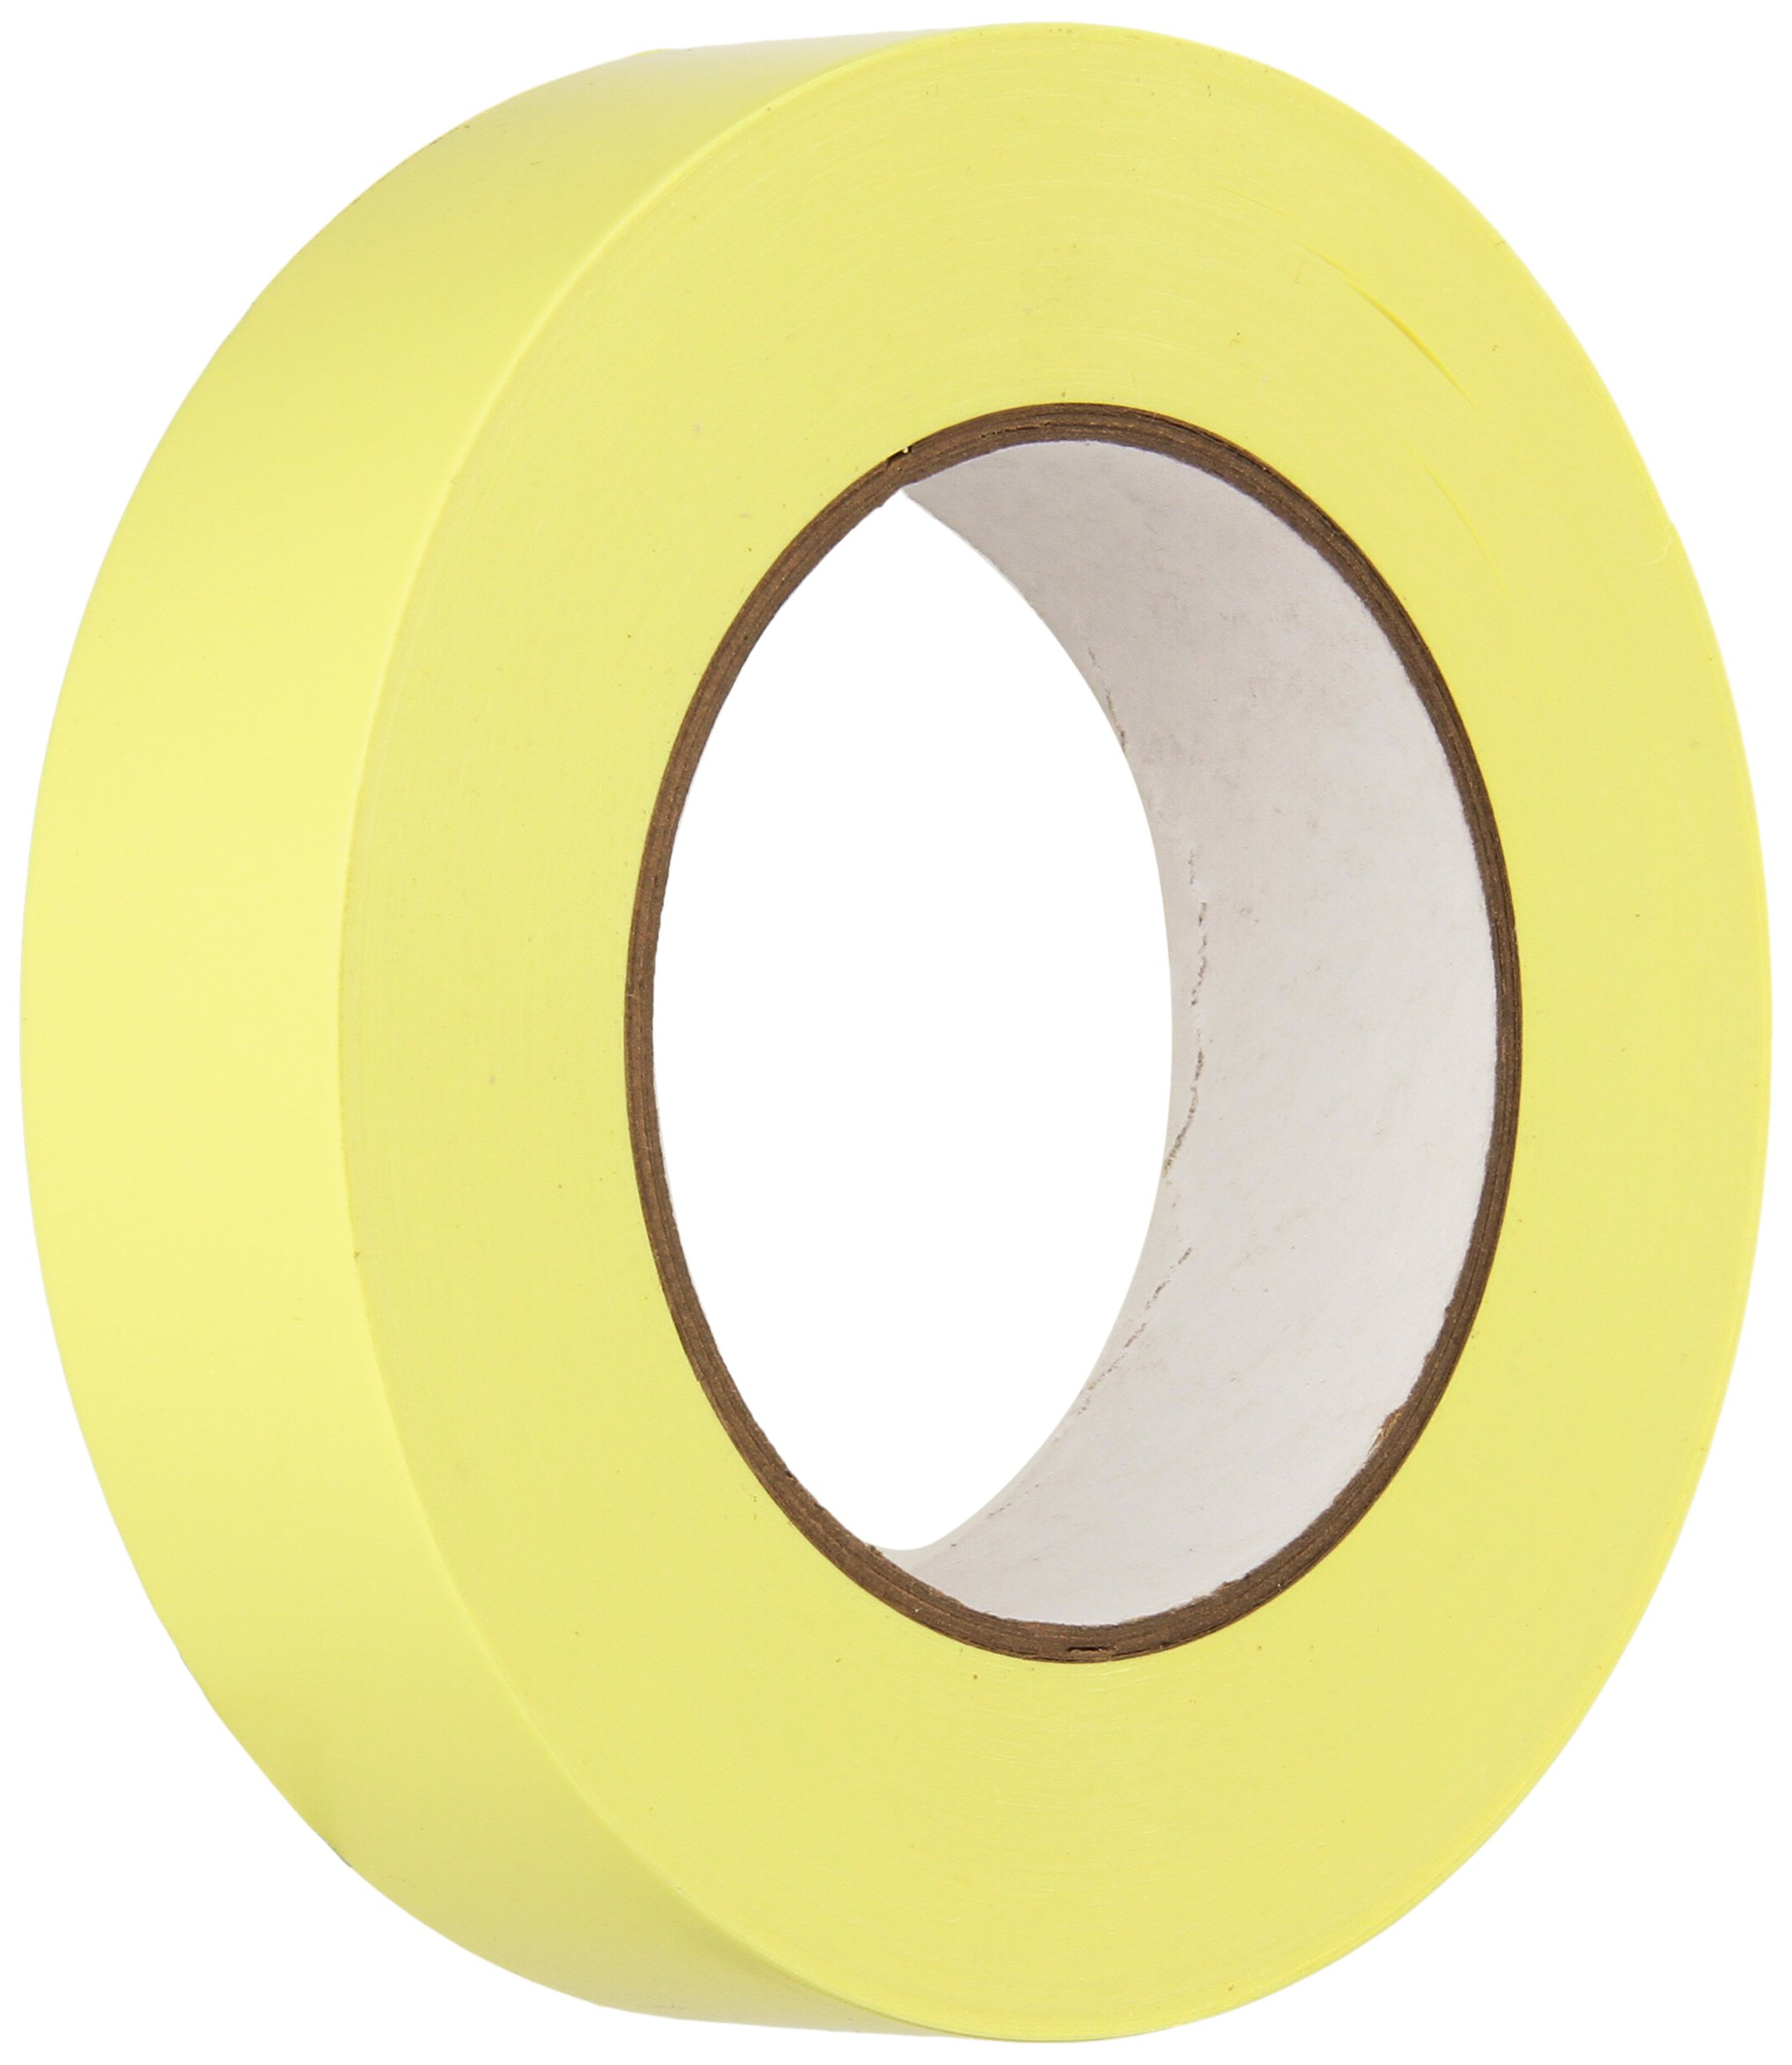 WTB TCS i25 30 mmx55 m Rim Tape Roll for 27 Wheels